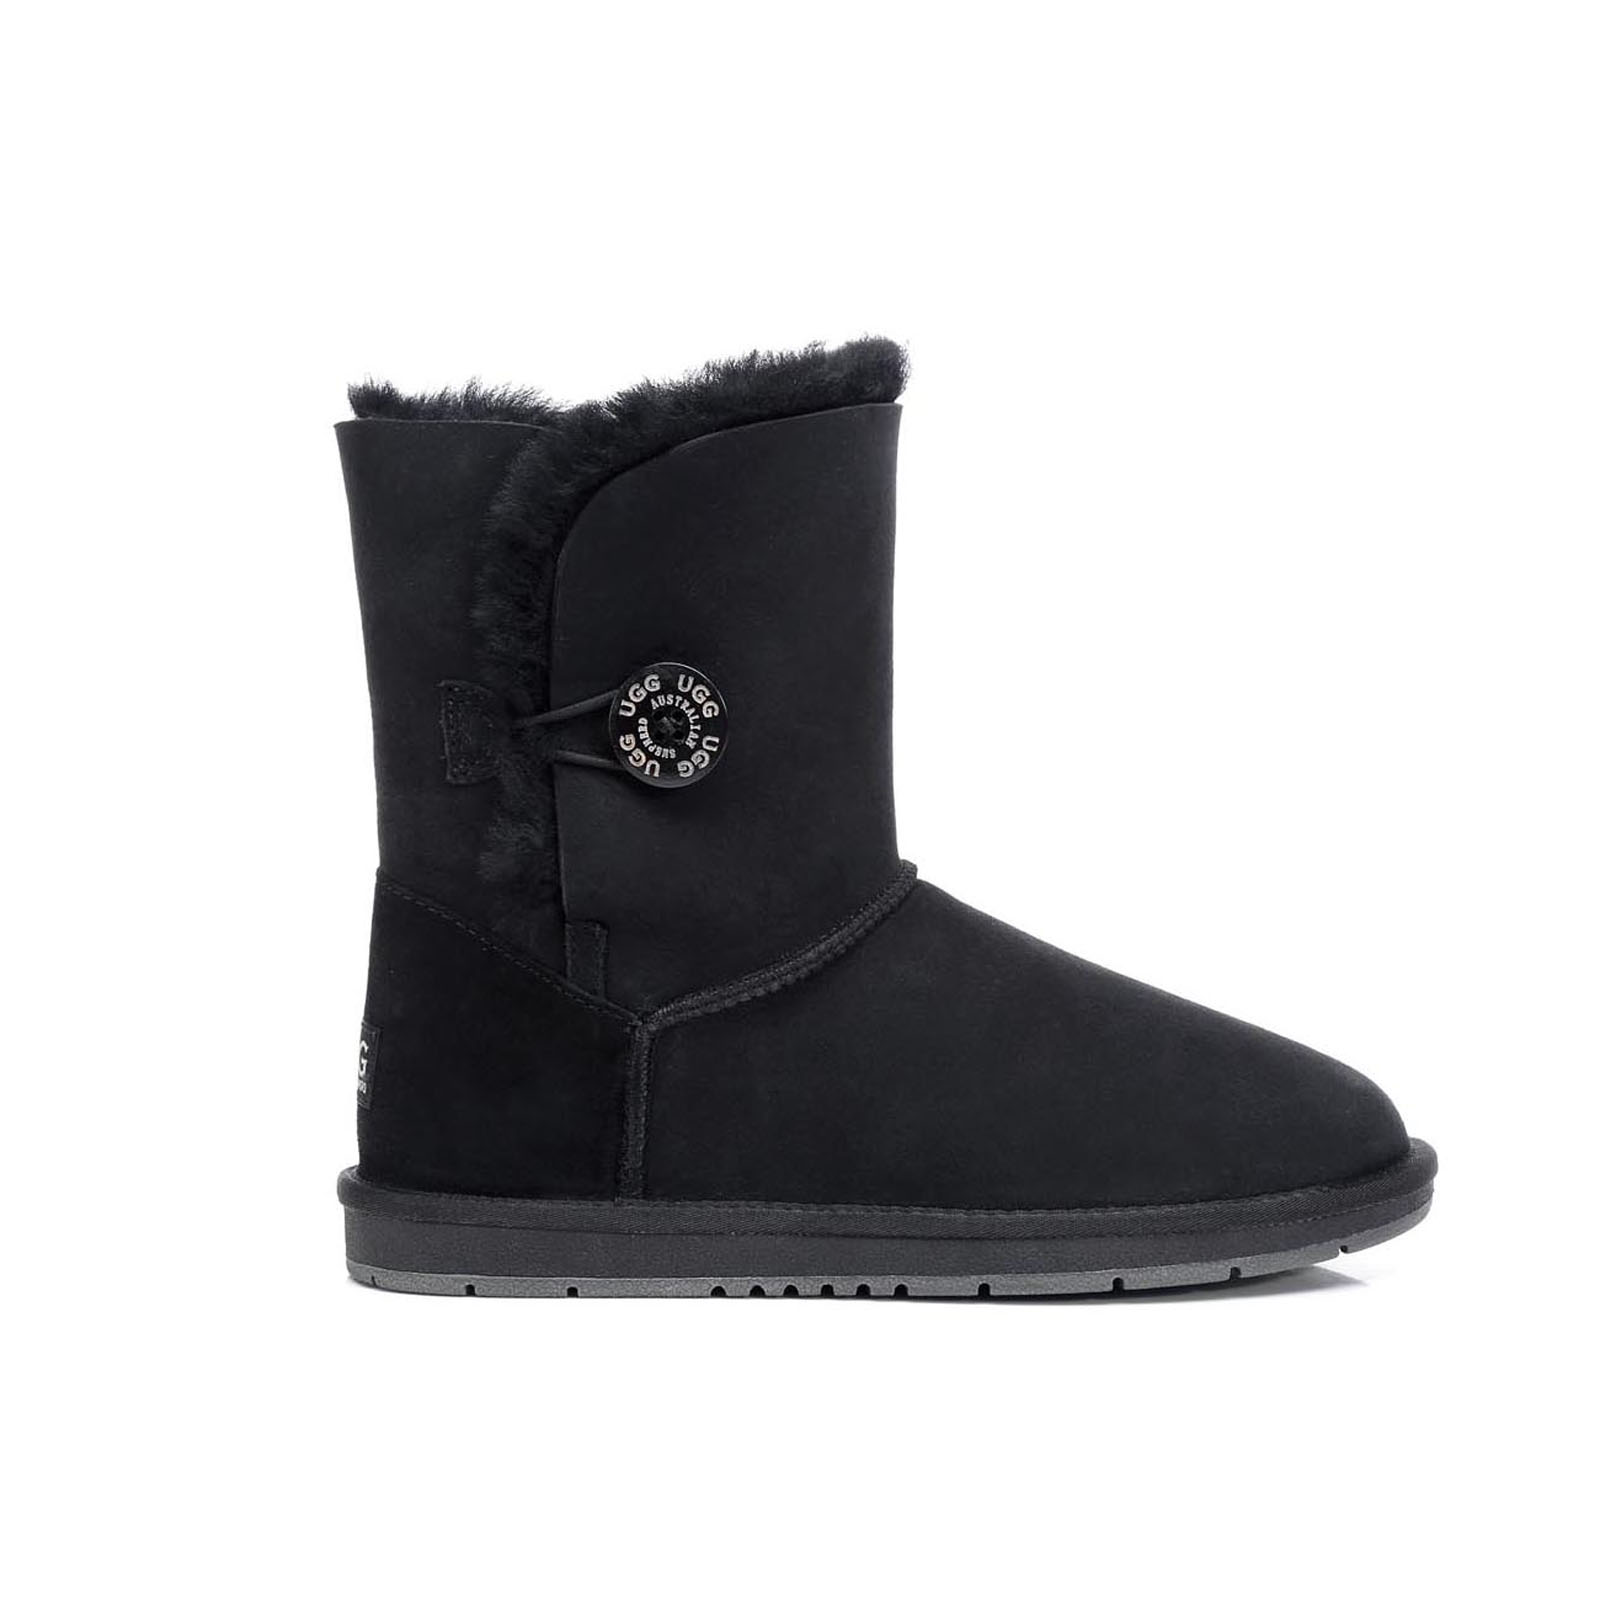 Ugg-Boots-Sheepskin-Classic-Short-Button-Australian-Ladies-Black-Size-35-41-EU